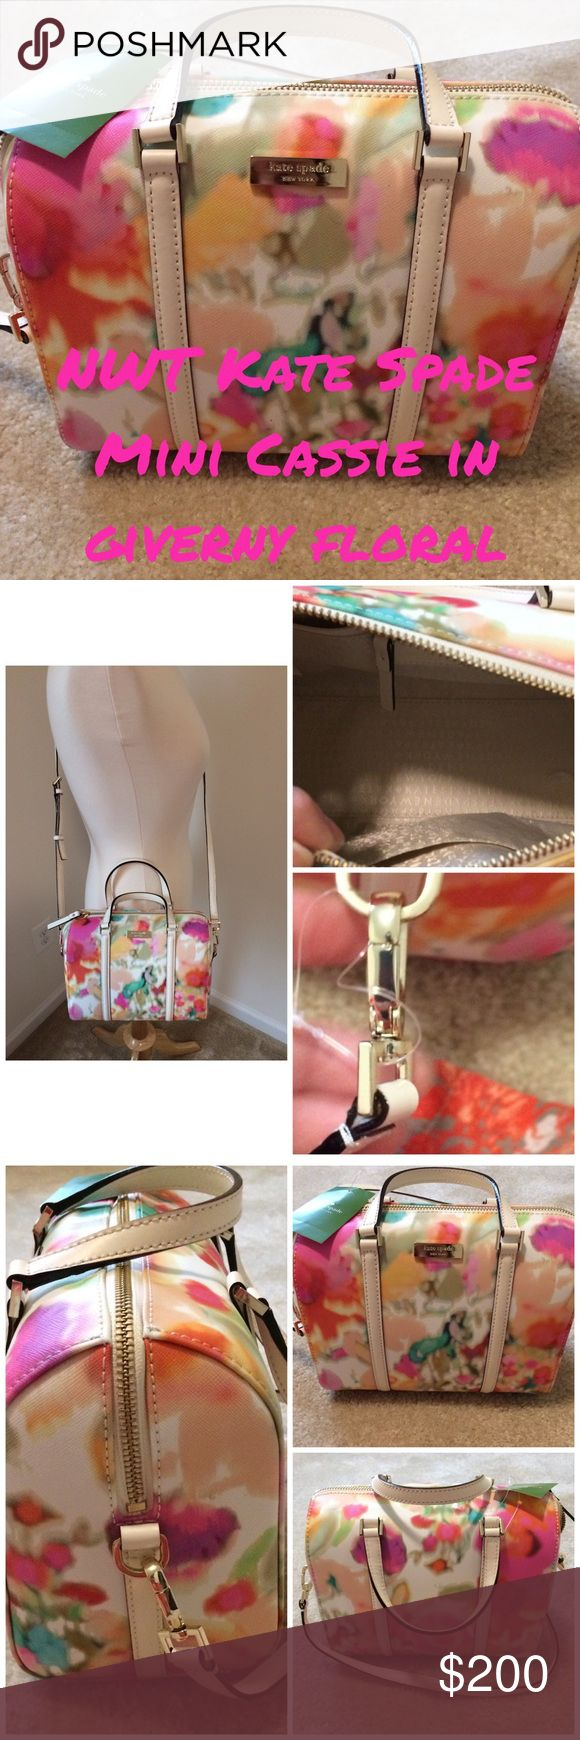 🆕 NWT Kate Spade mini Cassie Giverny floral NWT authentic Kate Spade mini Cassie in giverny floral..about 9 in in width, about 7 in height, about 5 in depth...there is a very small pinpoint mark on the lower front that is pictured above and not very noticeable..has a detachable strap that an make this a crossbody and is about 46 in or you can use the carry straps which are about 4 in tall.  NO DUST BAG. kate spade Bags